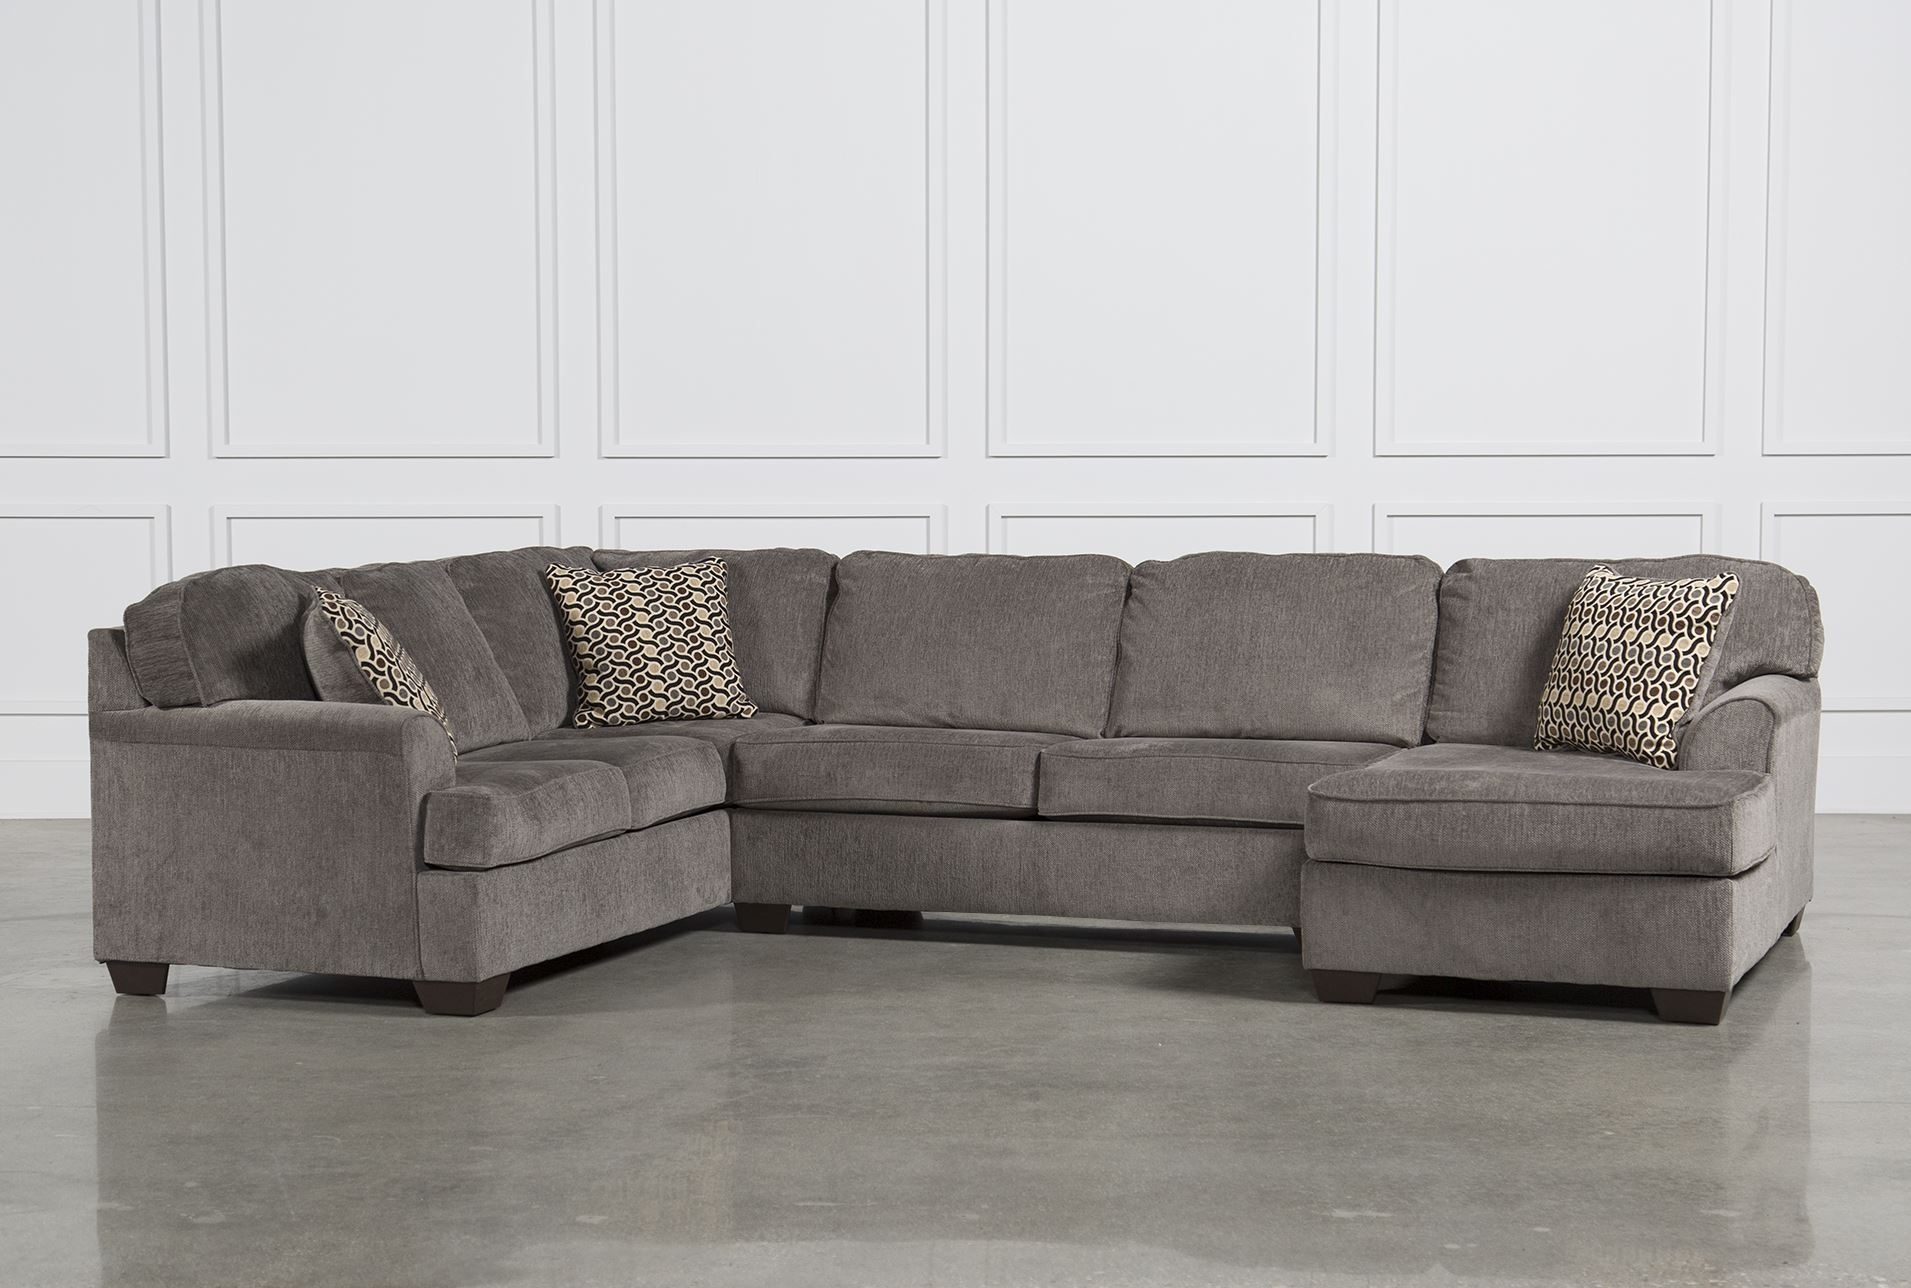 Sectional Couches Living Spaces Aurora 2 Piece Sectional Living pertaining to Aquarius Dark Grey 2 Piece Sectionals With Raf Chaise (Image 21 of 30)